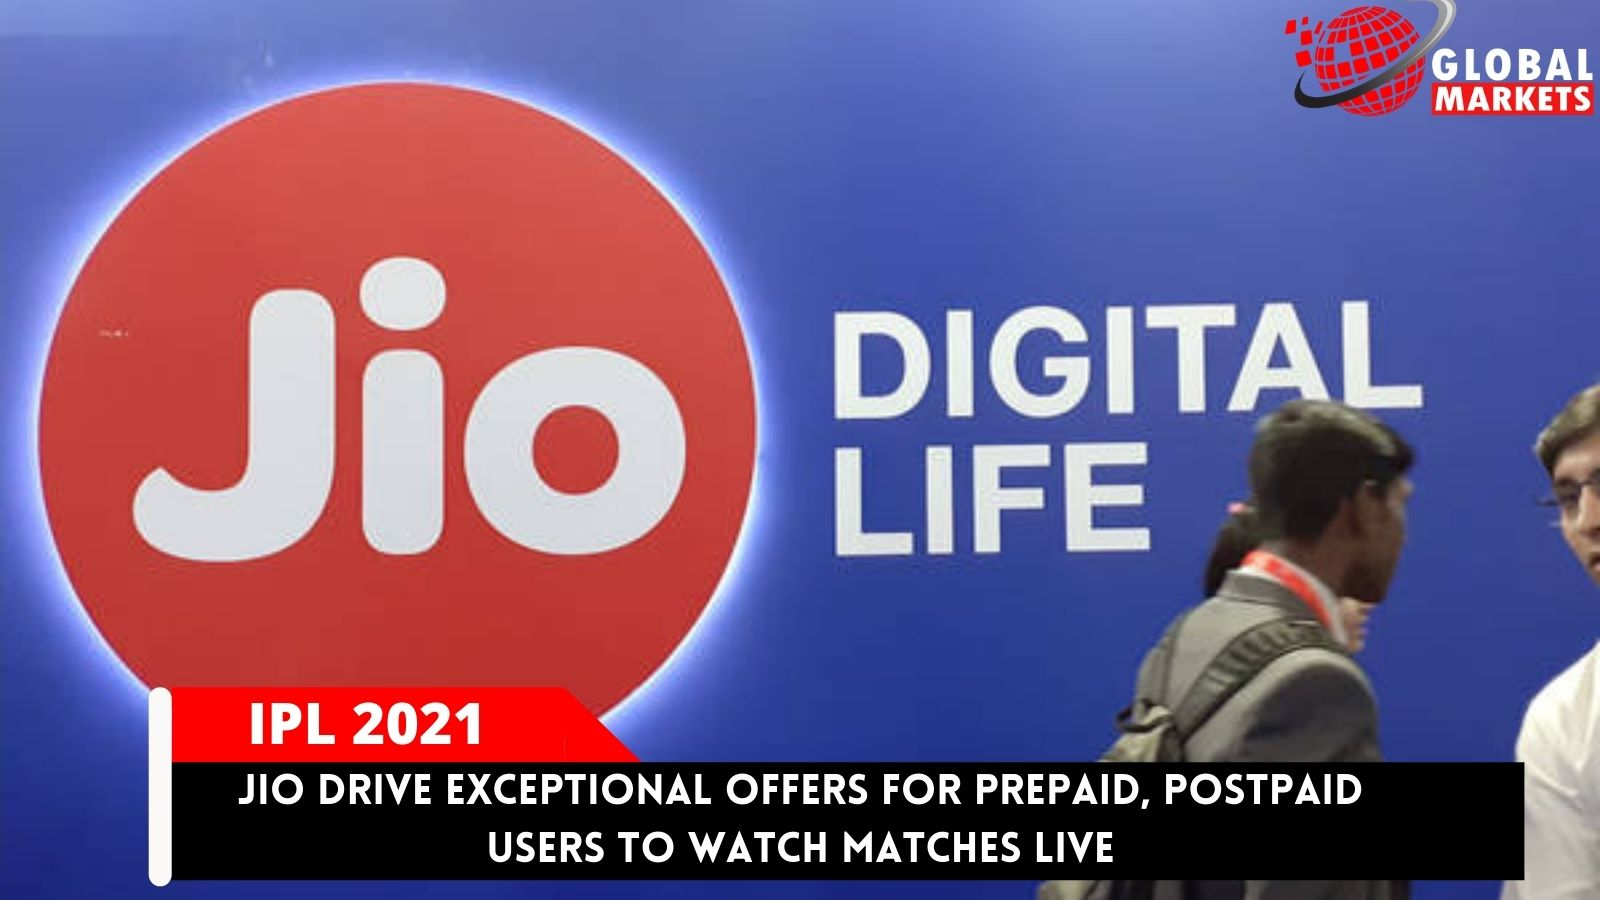 Jio drive exceptional Offers for Prepaid, Postpaid Users to Watch Matches Live